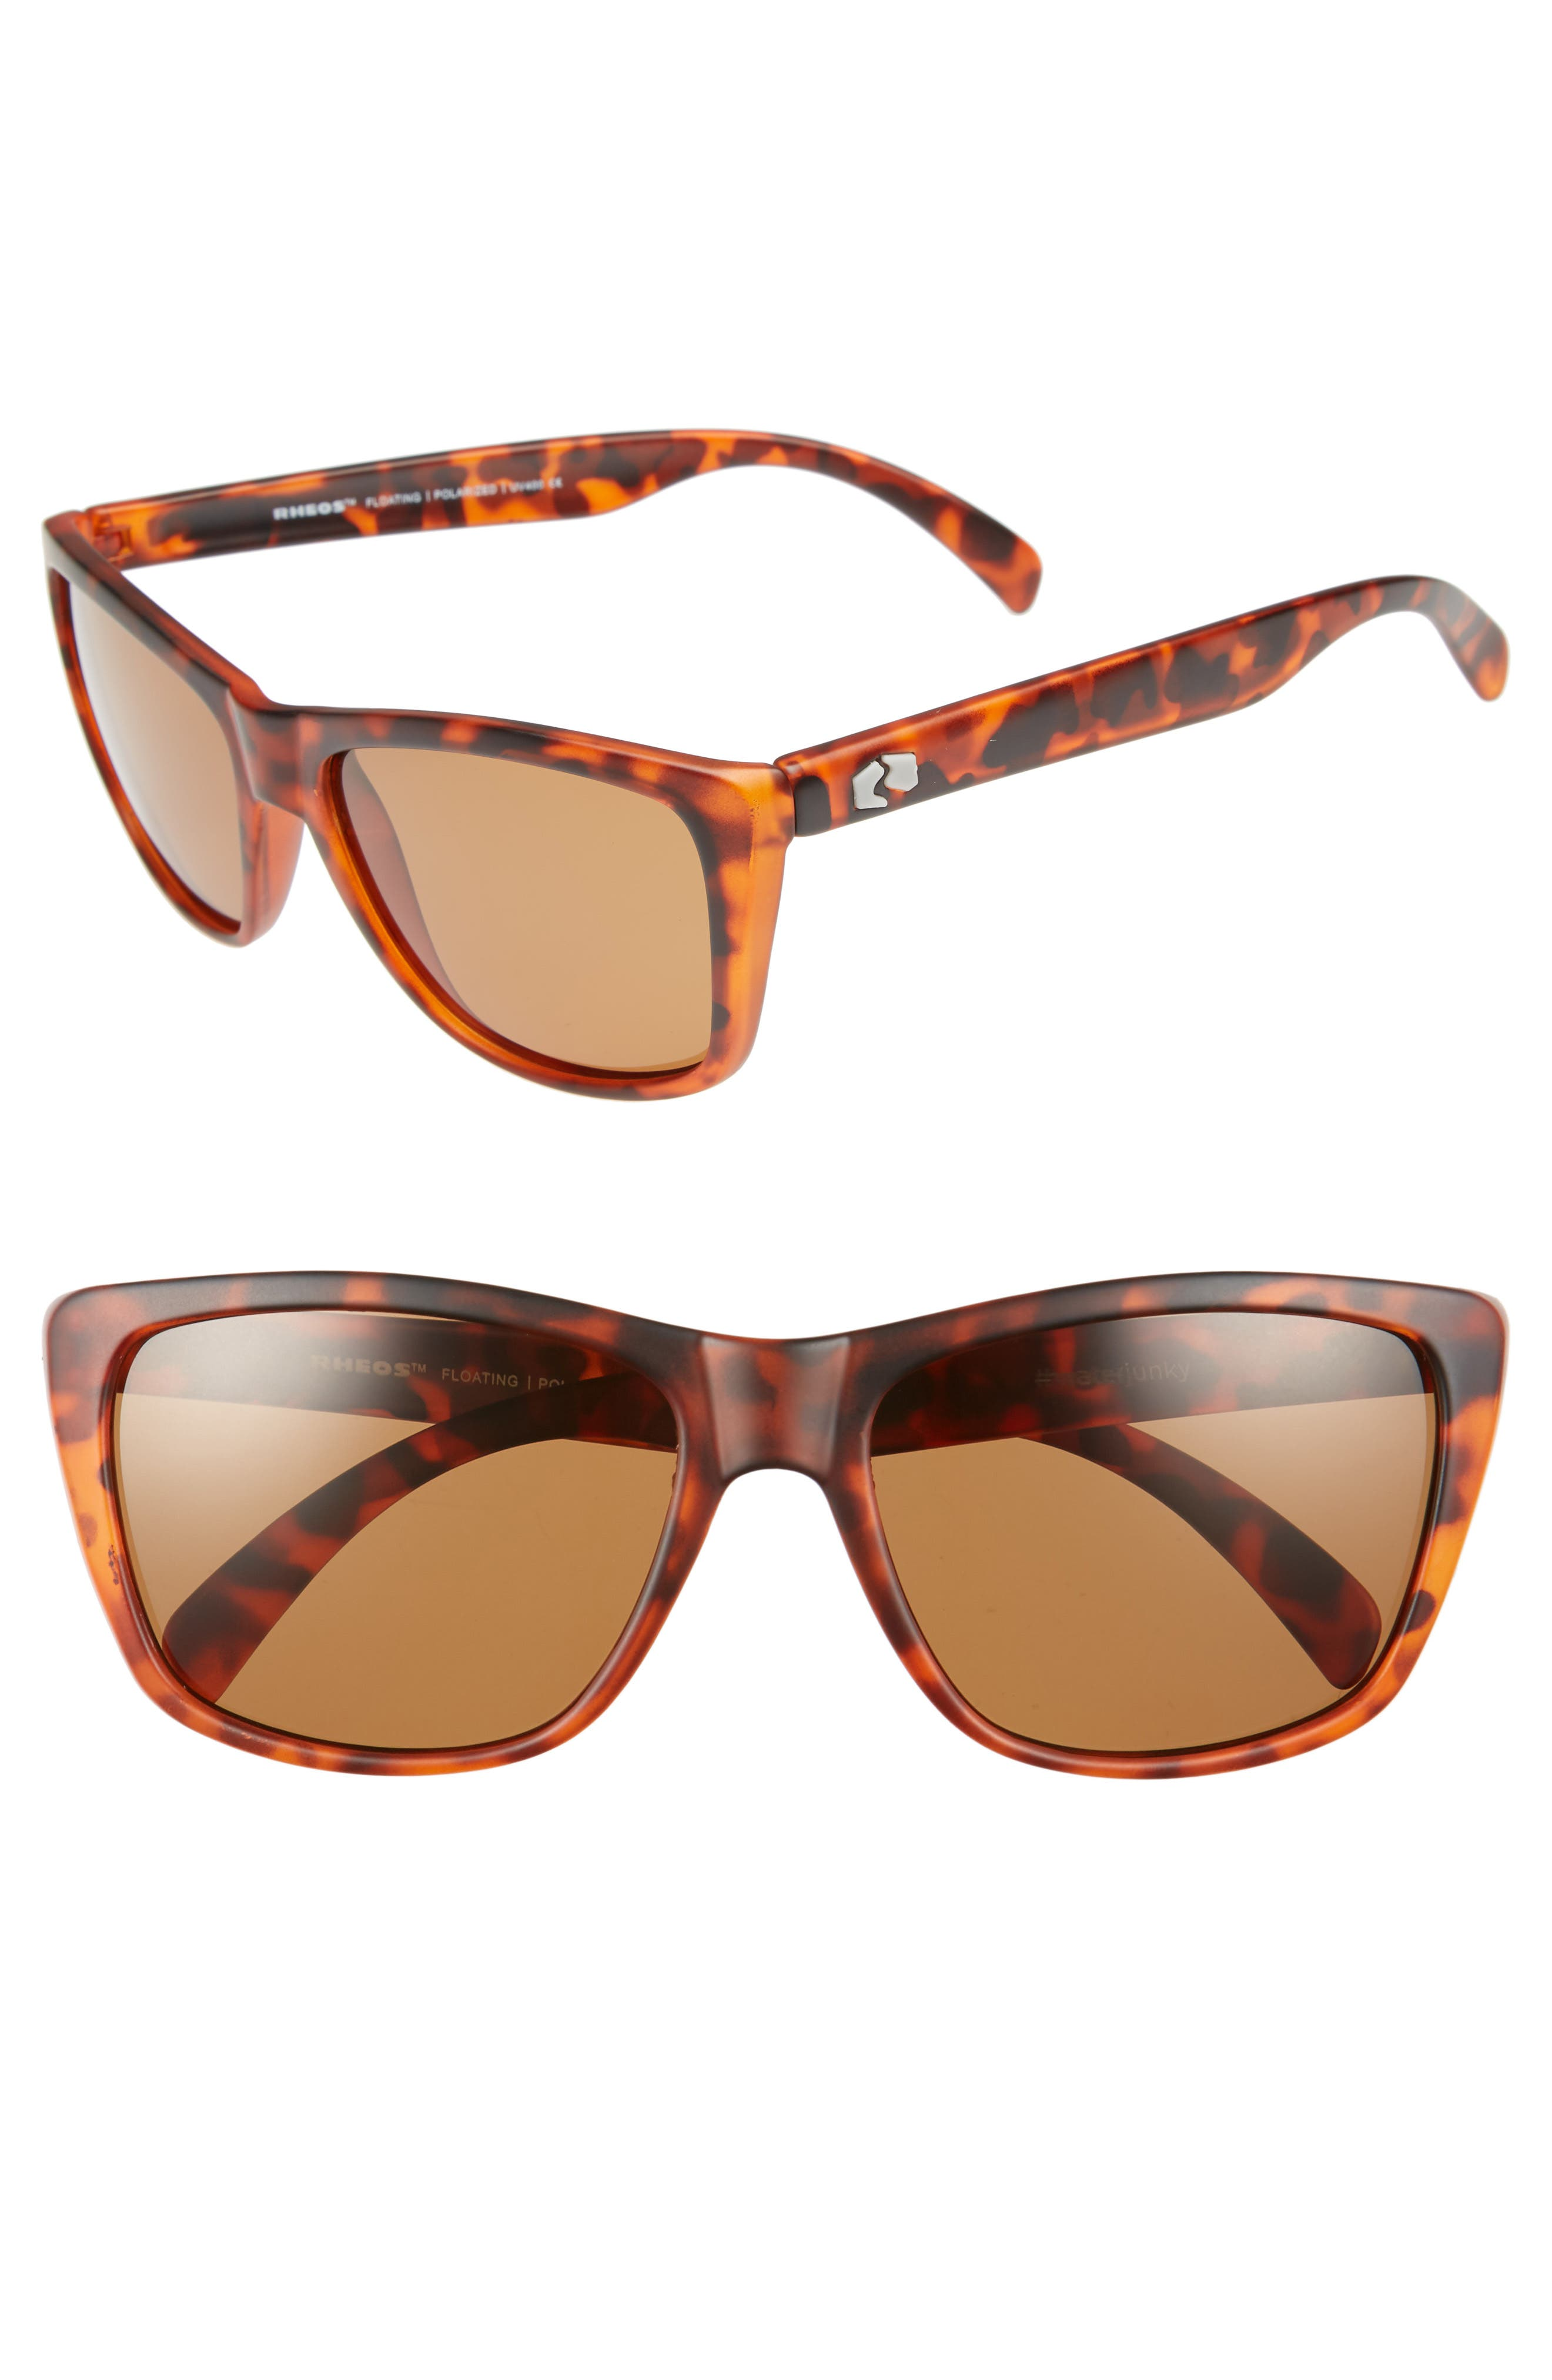 Sapelos Floating 60mm Polarized Sunglasses,                             Main thumbnail 1, color,                             Tortoise / Amber